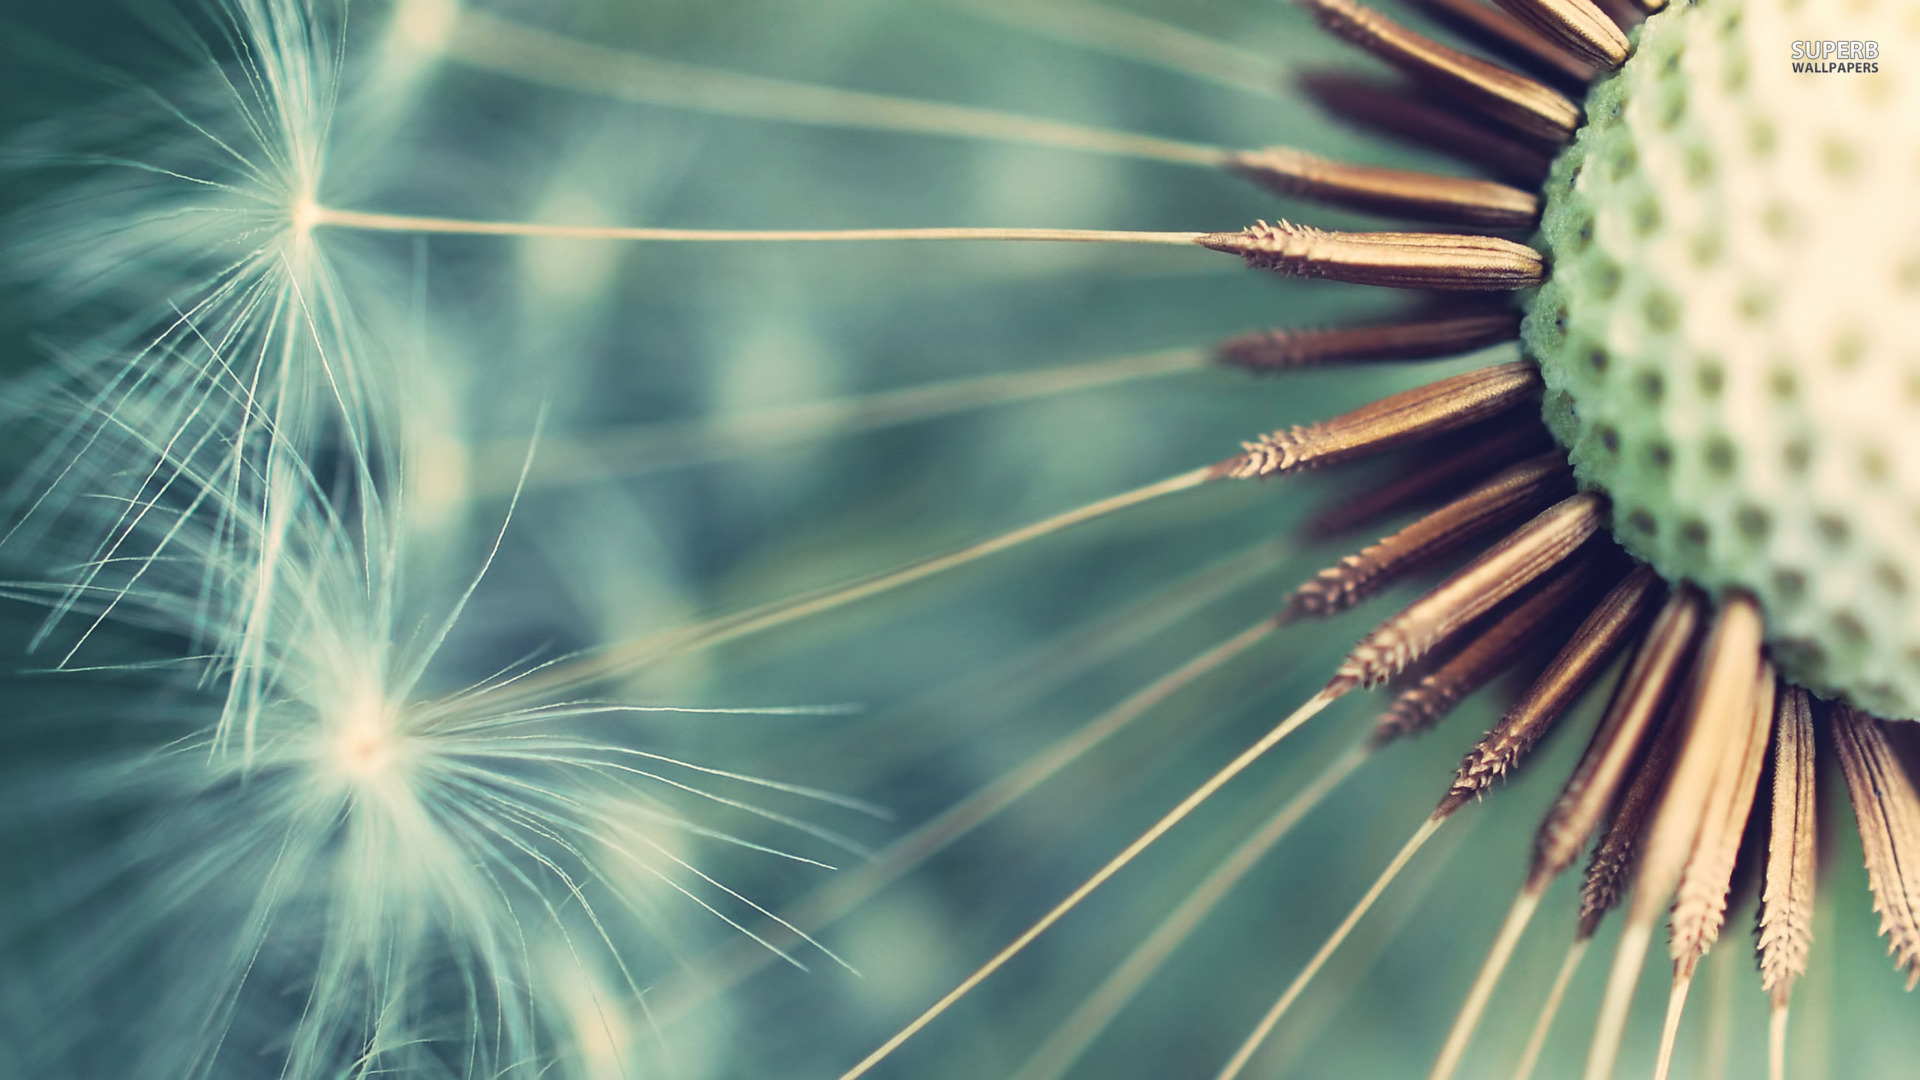 Dandelion wallpaper | 1920x1080 | #38076